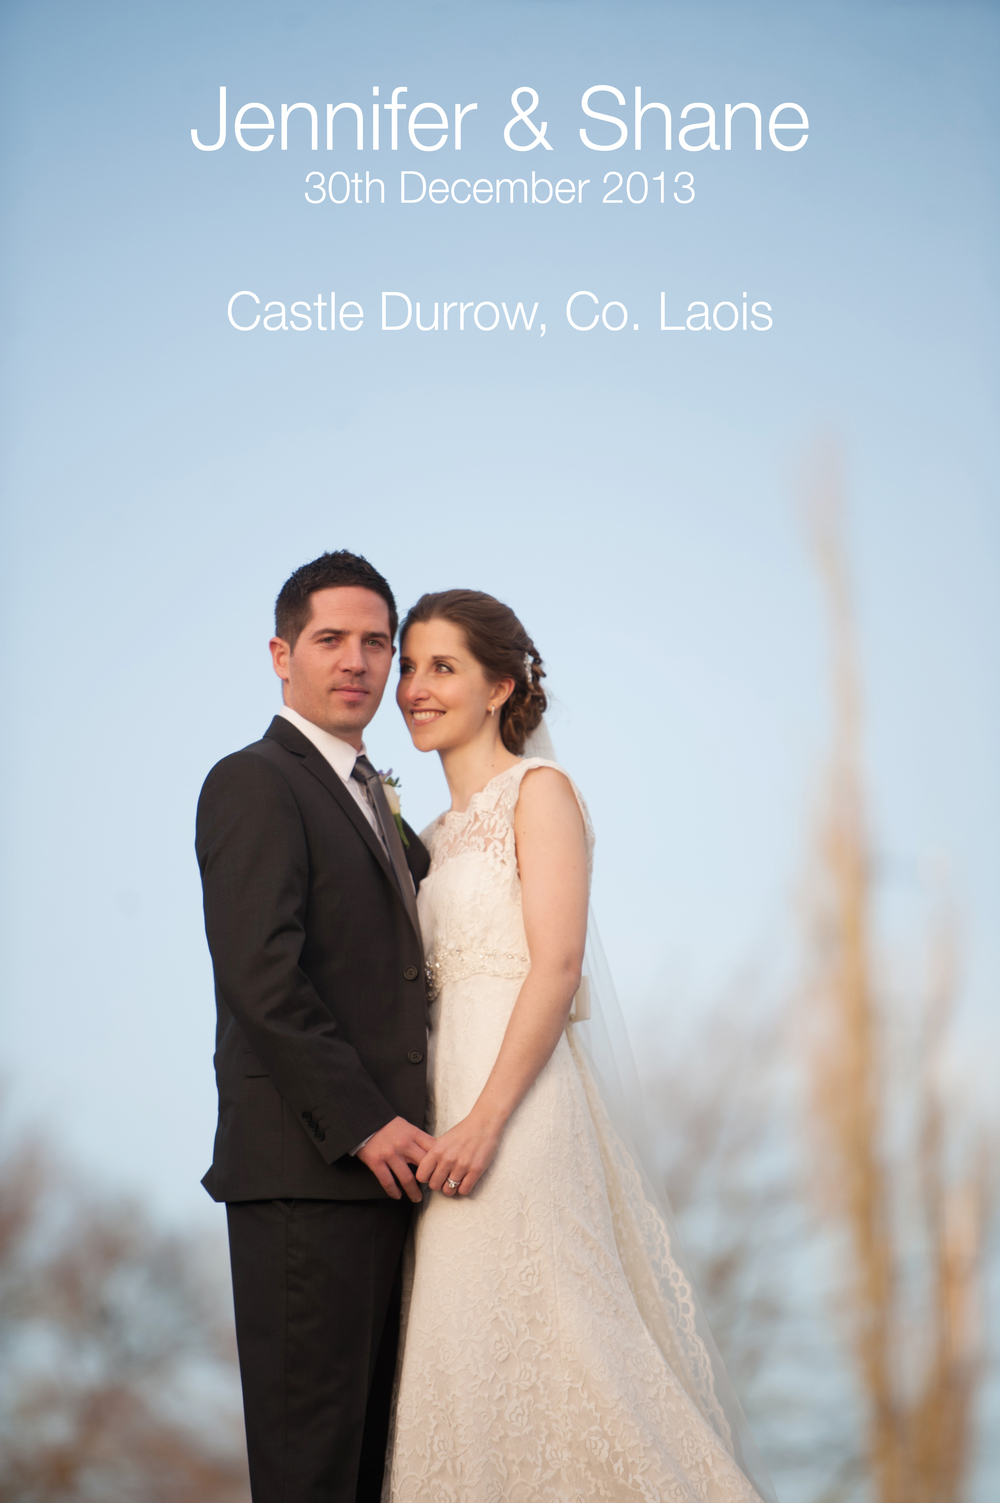 Wedding Photography Ireland Castle Durrow Laois Irish Wedding Photographer Cover.jpg